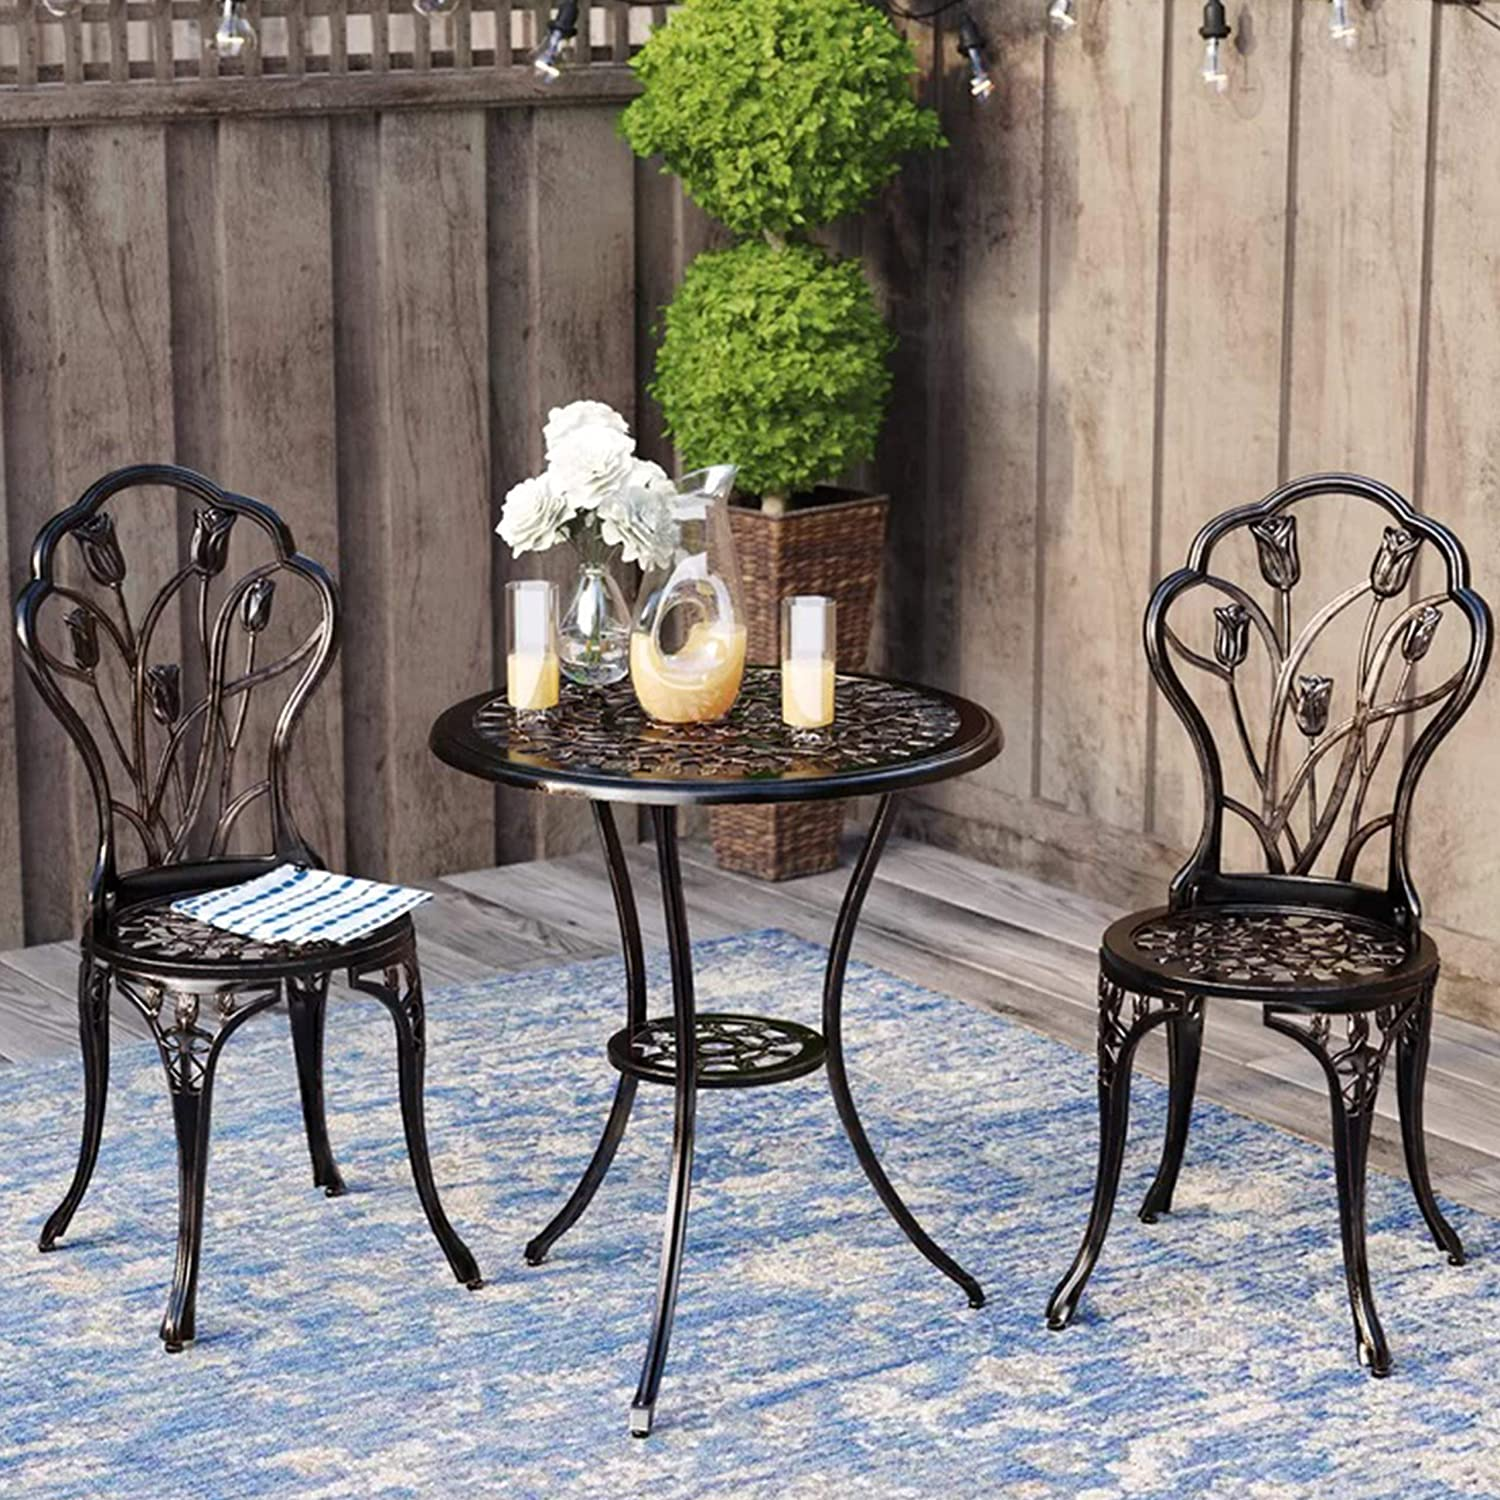 Kinger Home 3 Piece Patio Bistro Table Set Outdoor Furniture Cast Aluminum Antique Copper Bronze Finish Tulip Design, Rust Resistant